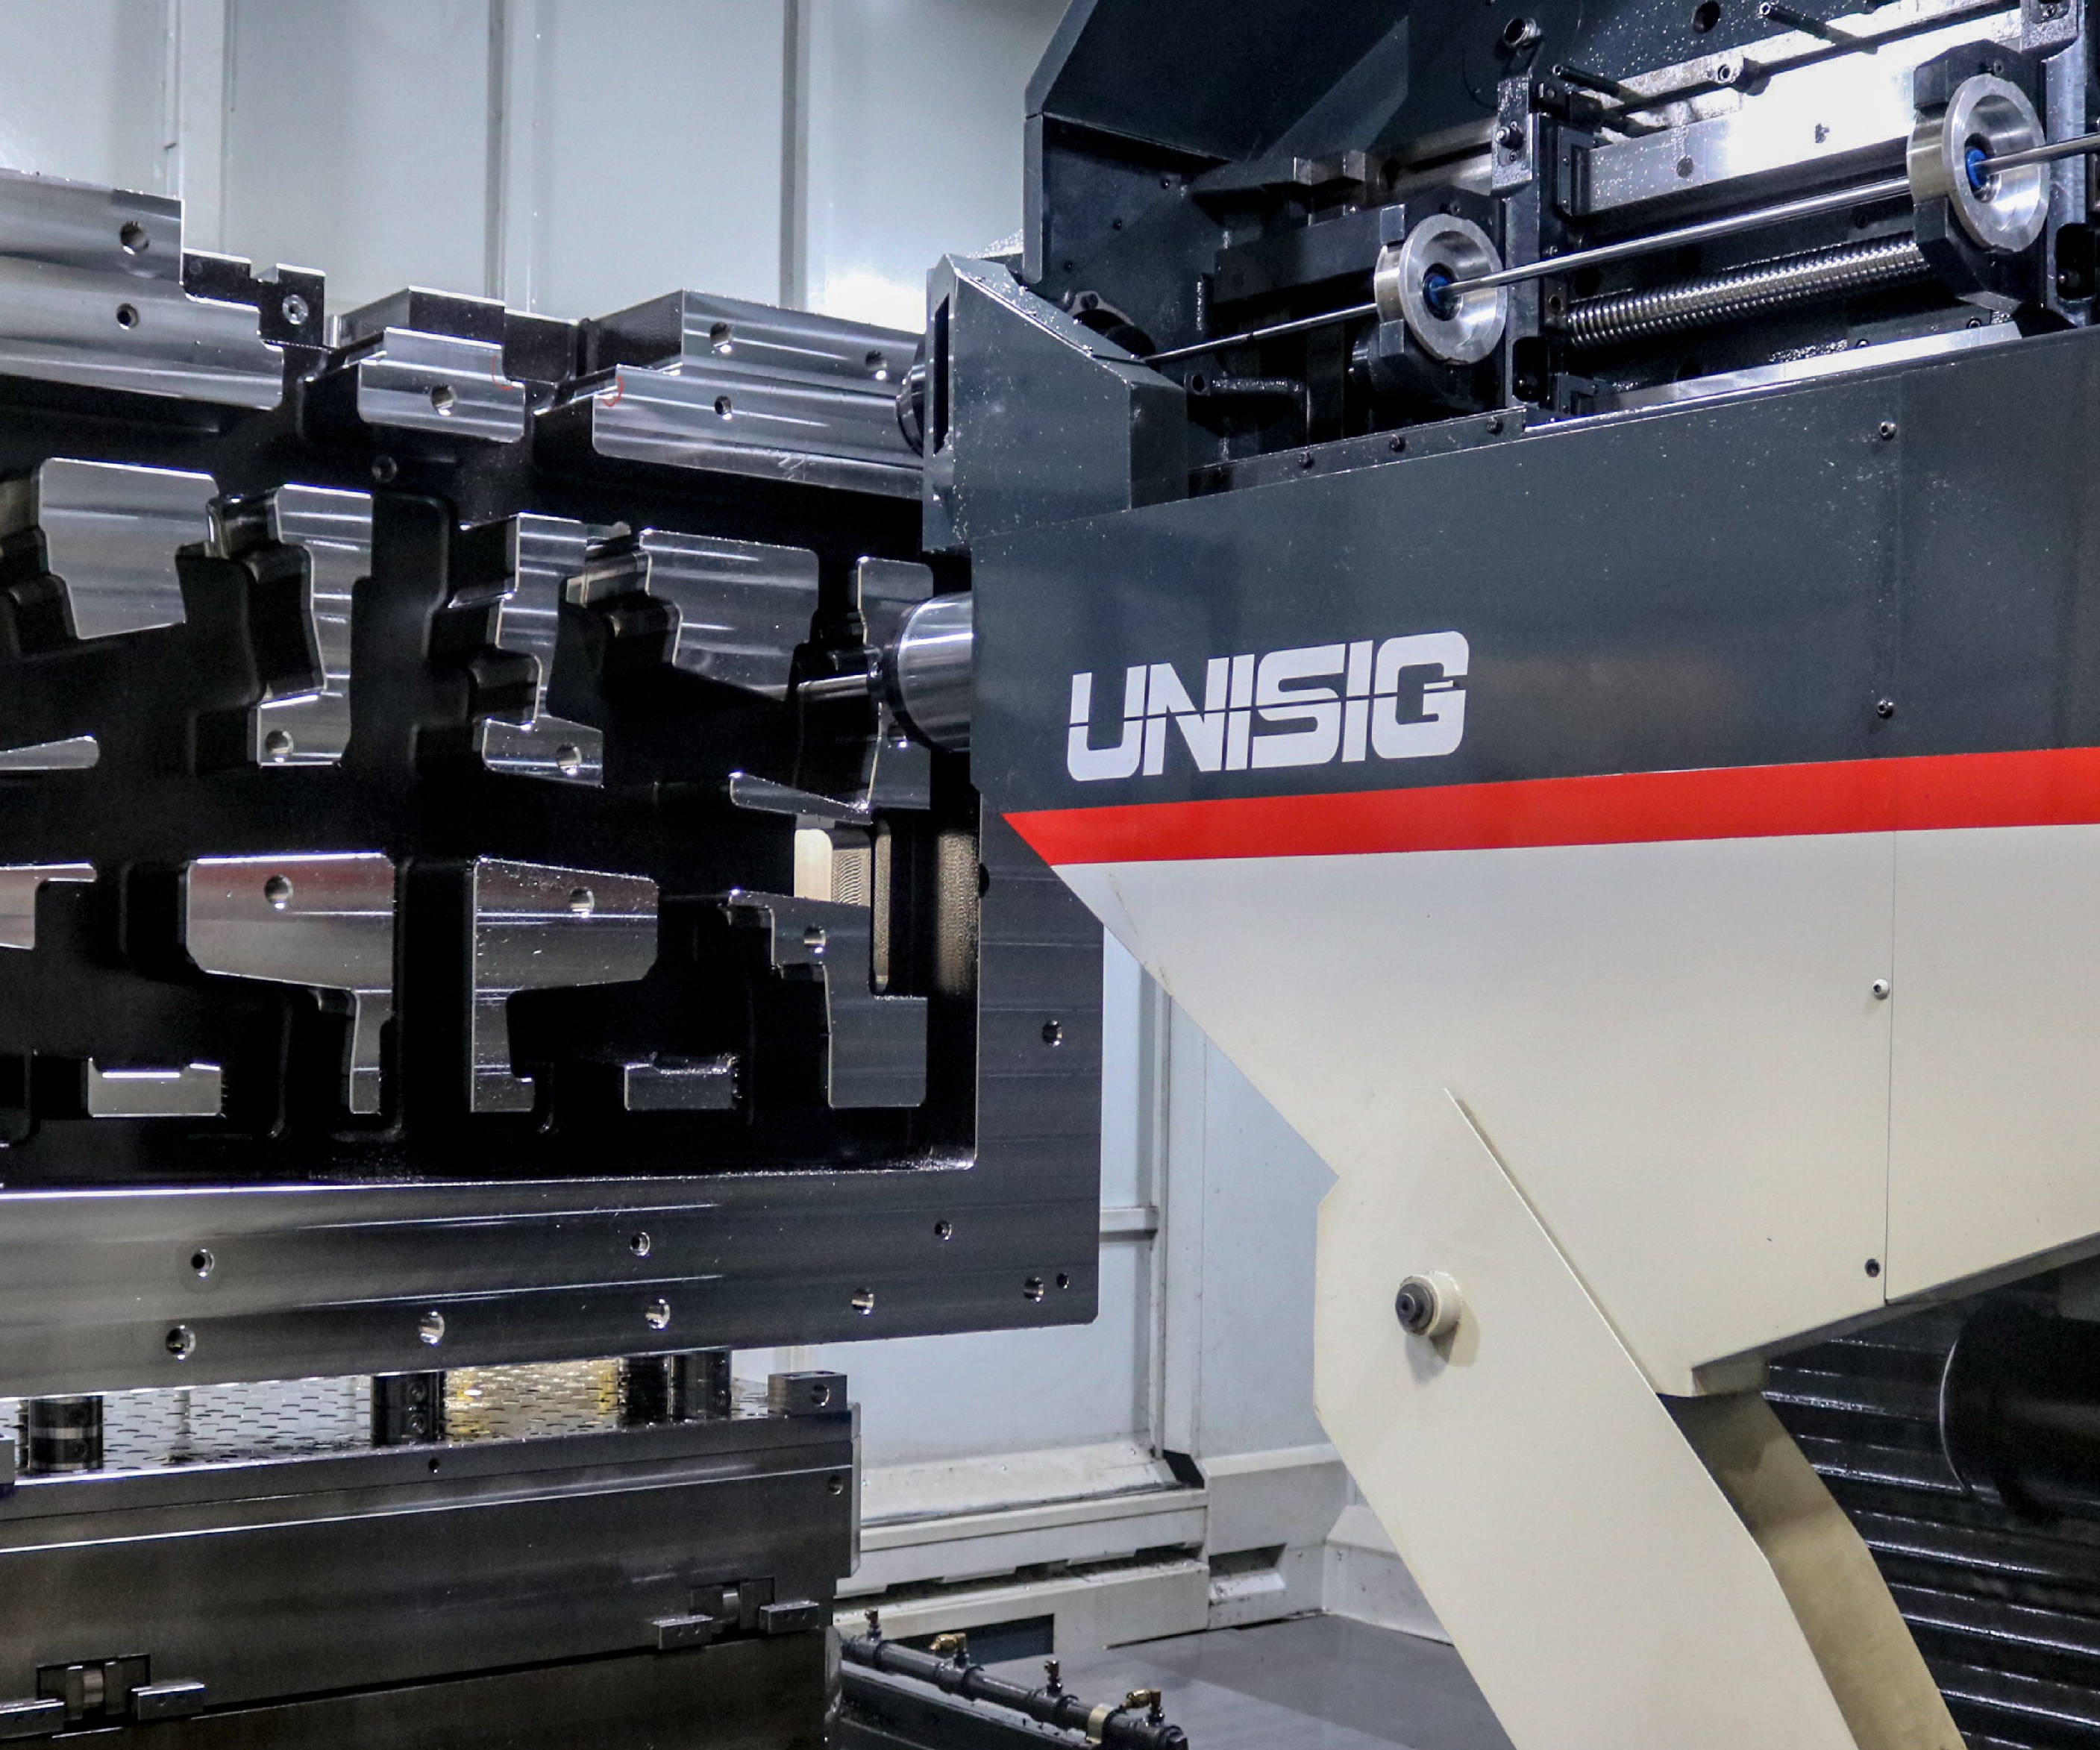 Unisig USC-M38 multitasking machining center at Concours Mold Inc.